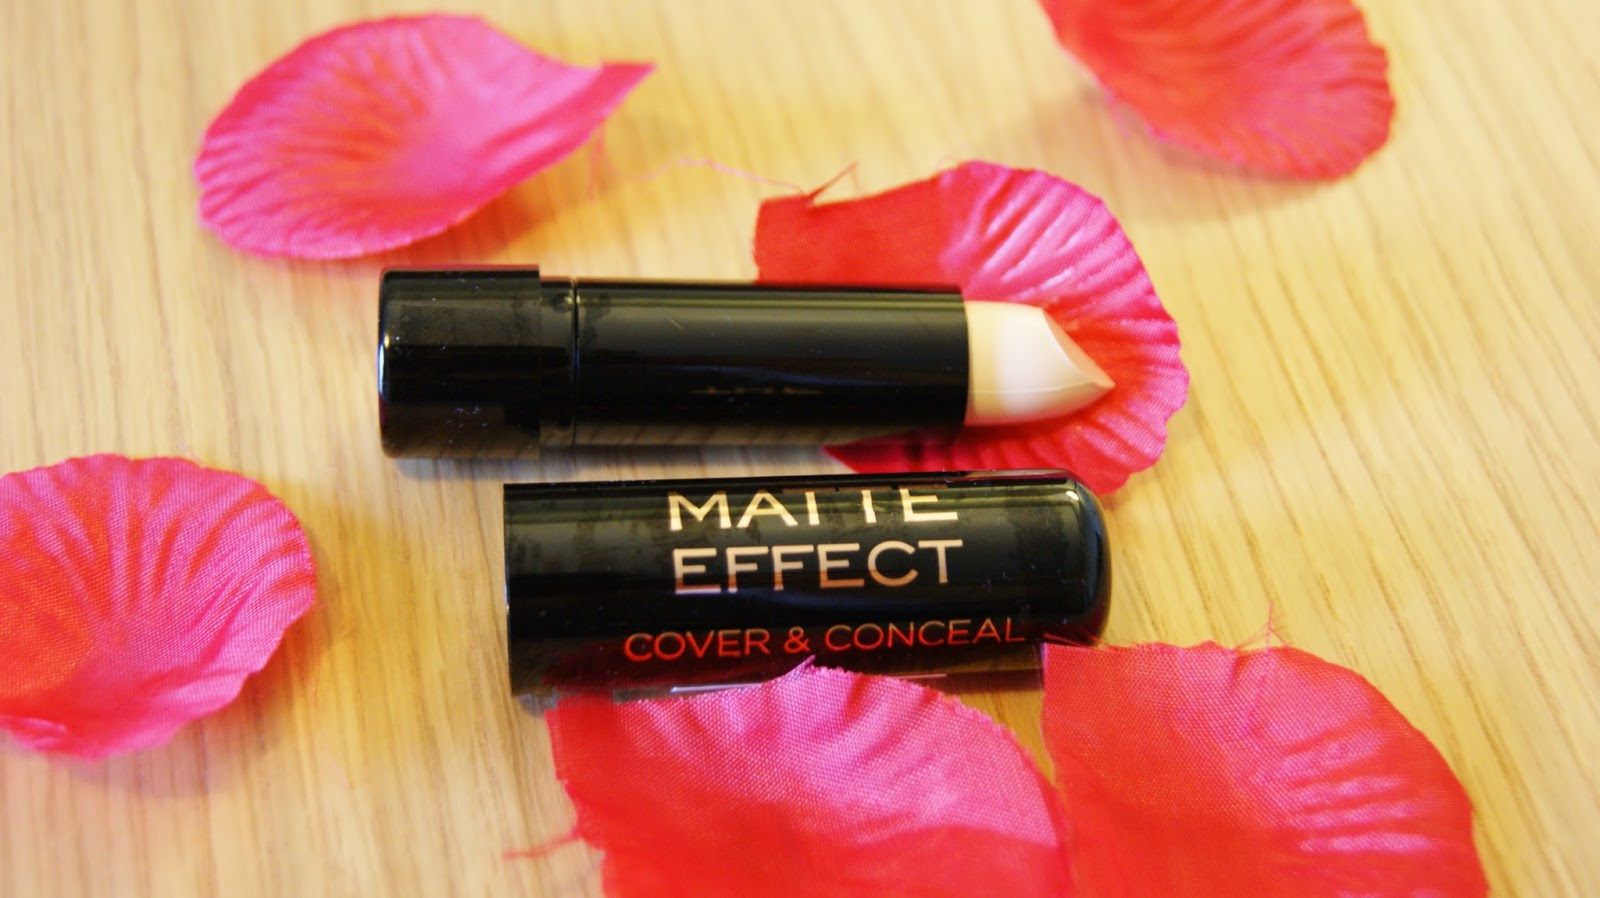 Makeup Revolution Matte Effect Concealer Review